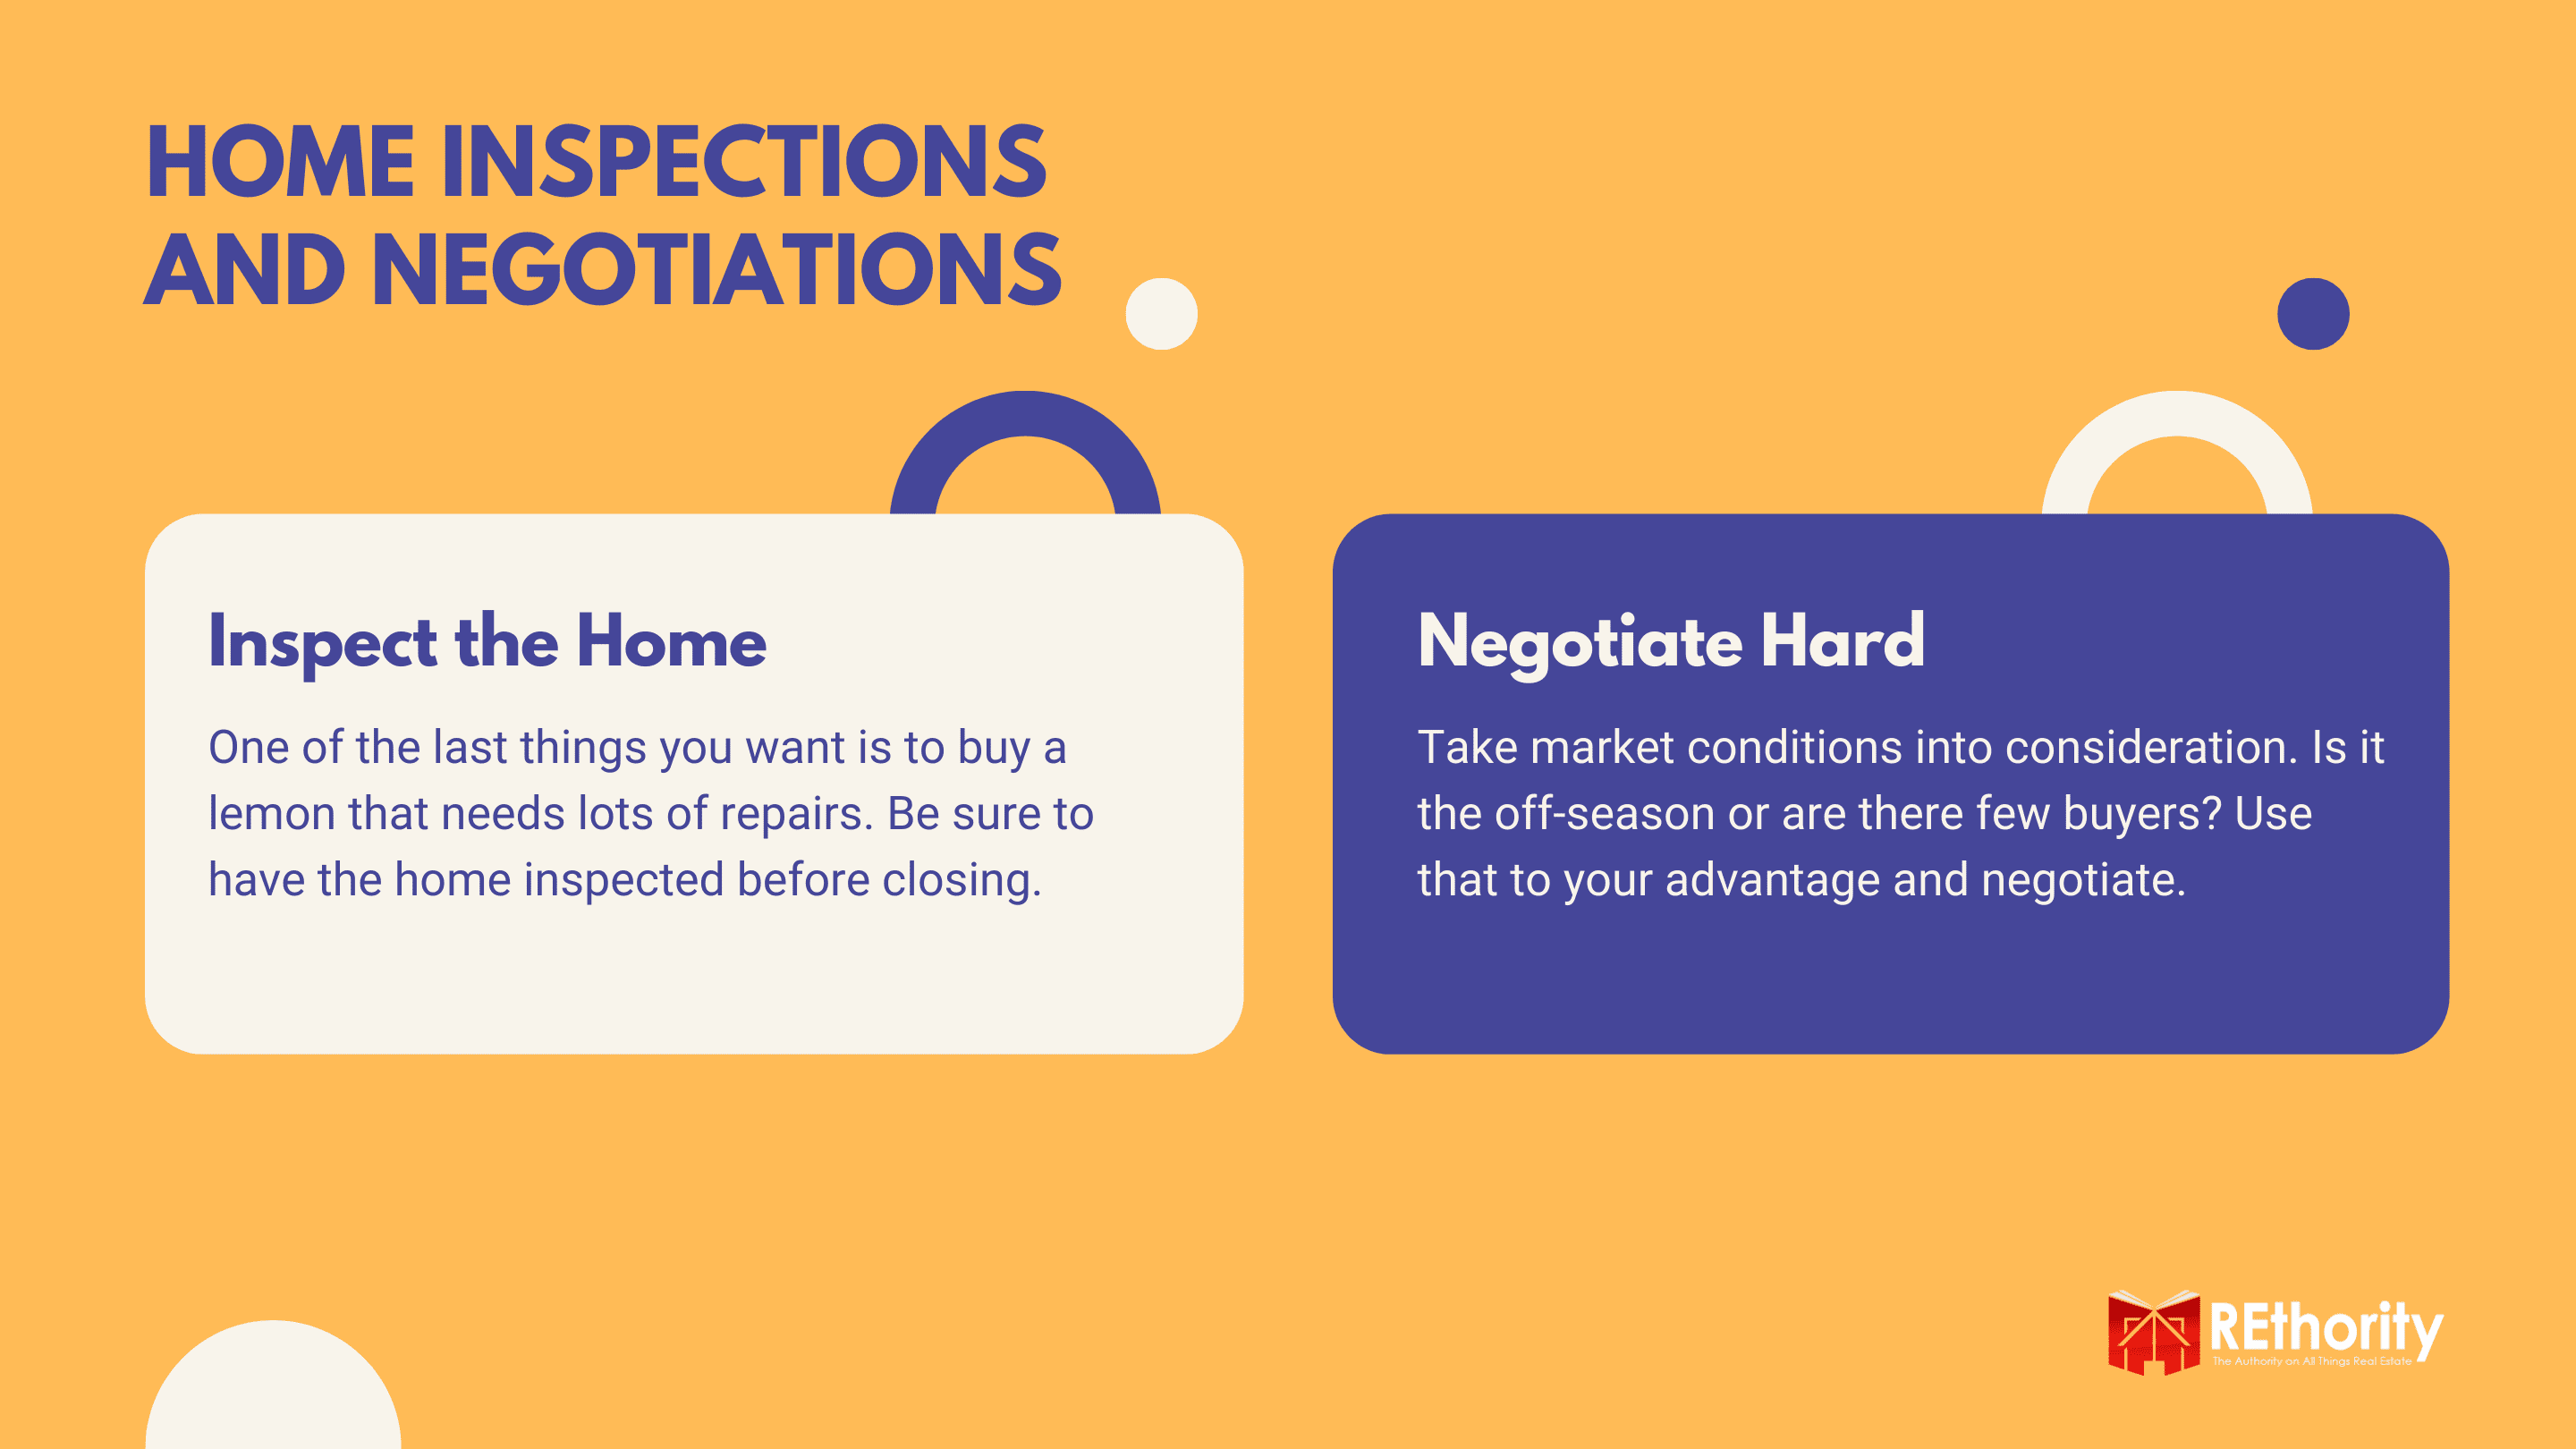 Home Inspections and Negotiations as step 6 of the steps to buying a house